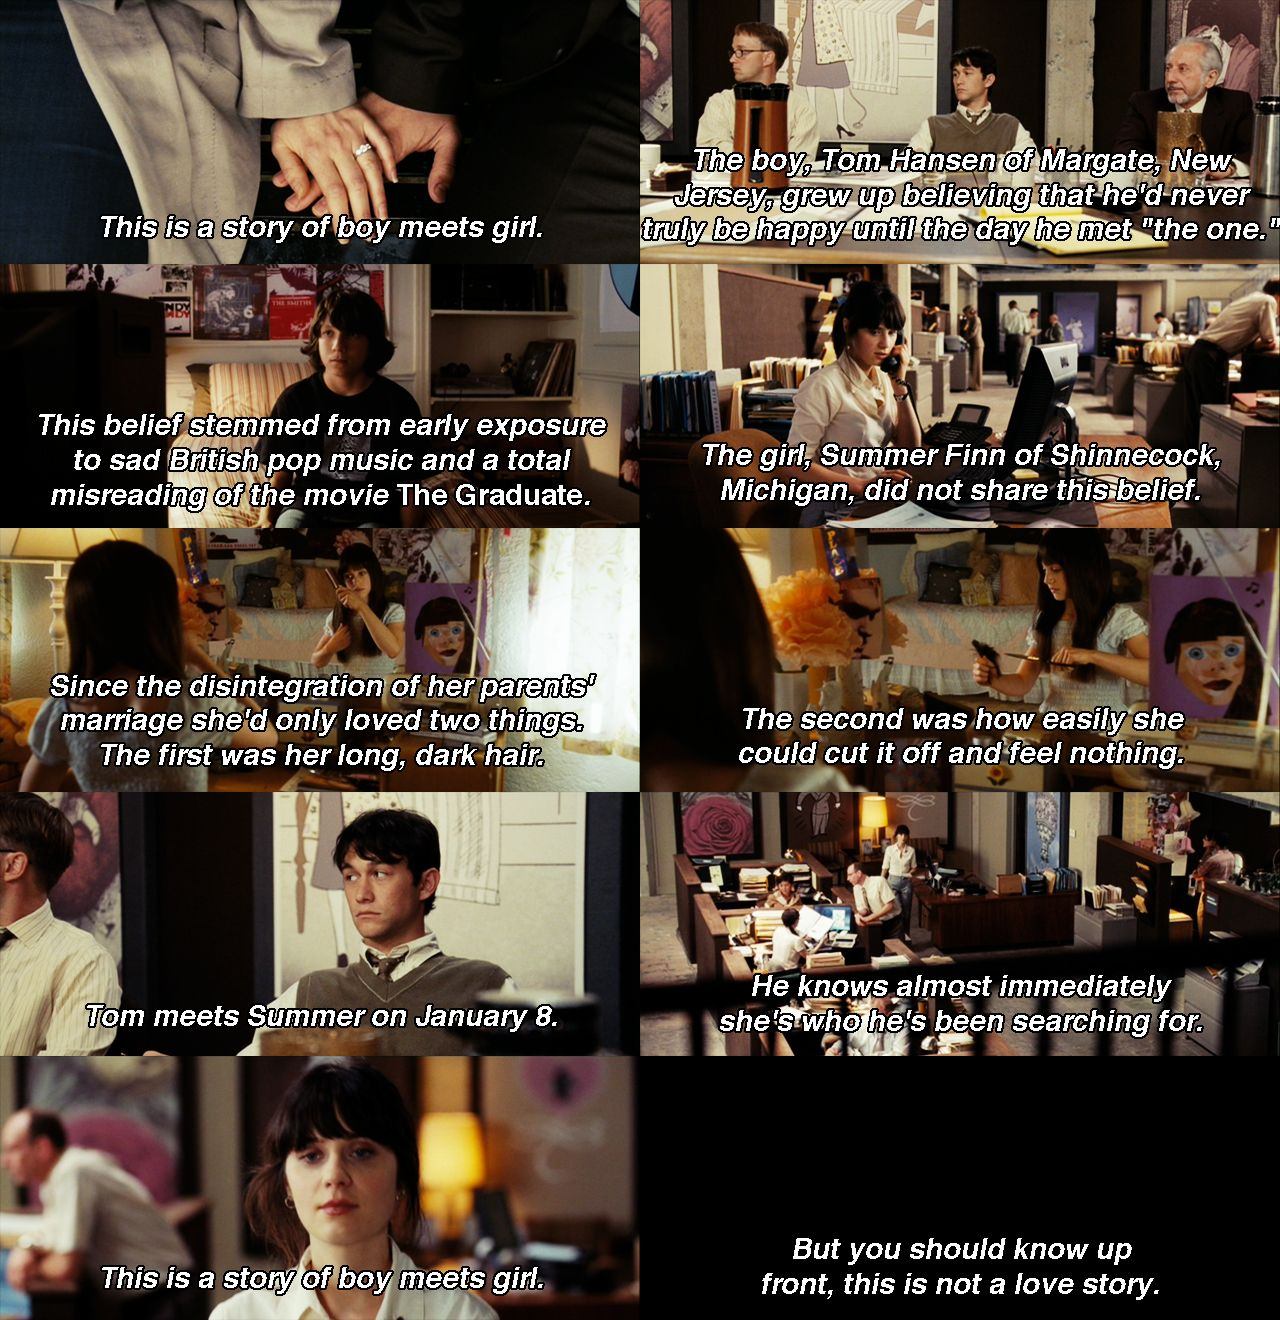 4ab3a71bafc6 500) Days of Summer (2009) - Movie Quotes